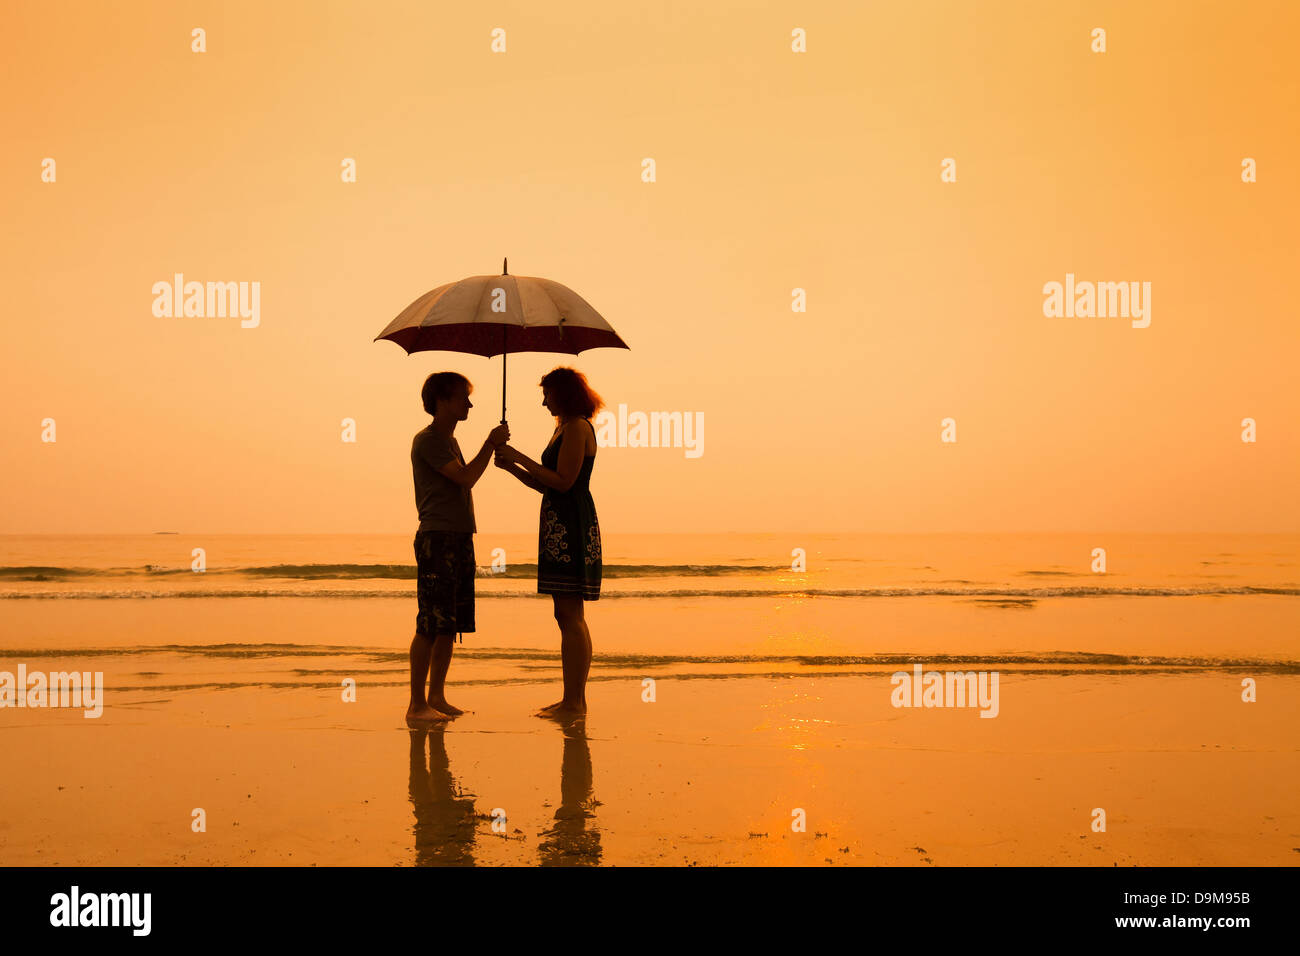 family on the beach, silhouettes of couple with umbrella - Stock Image